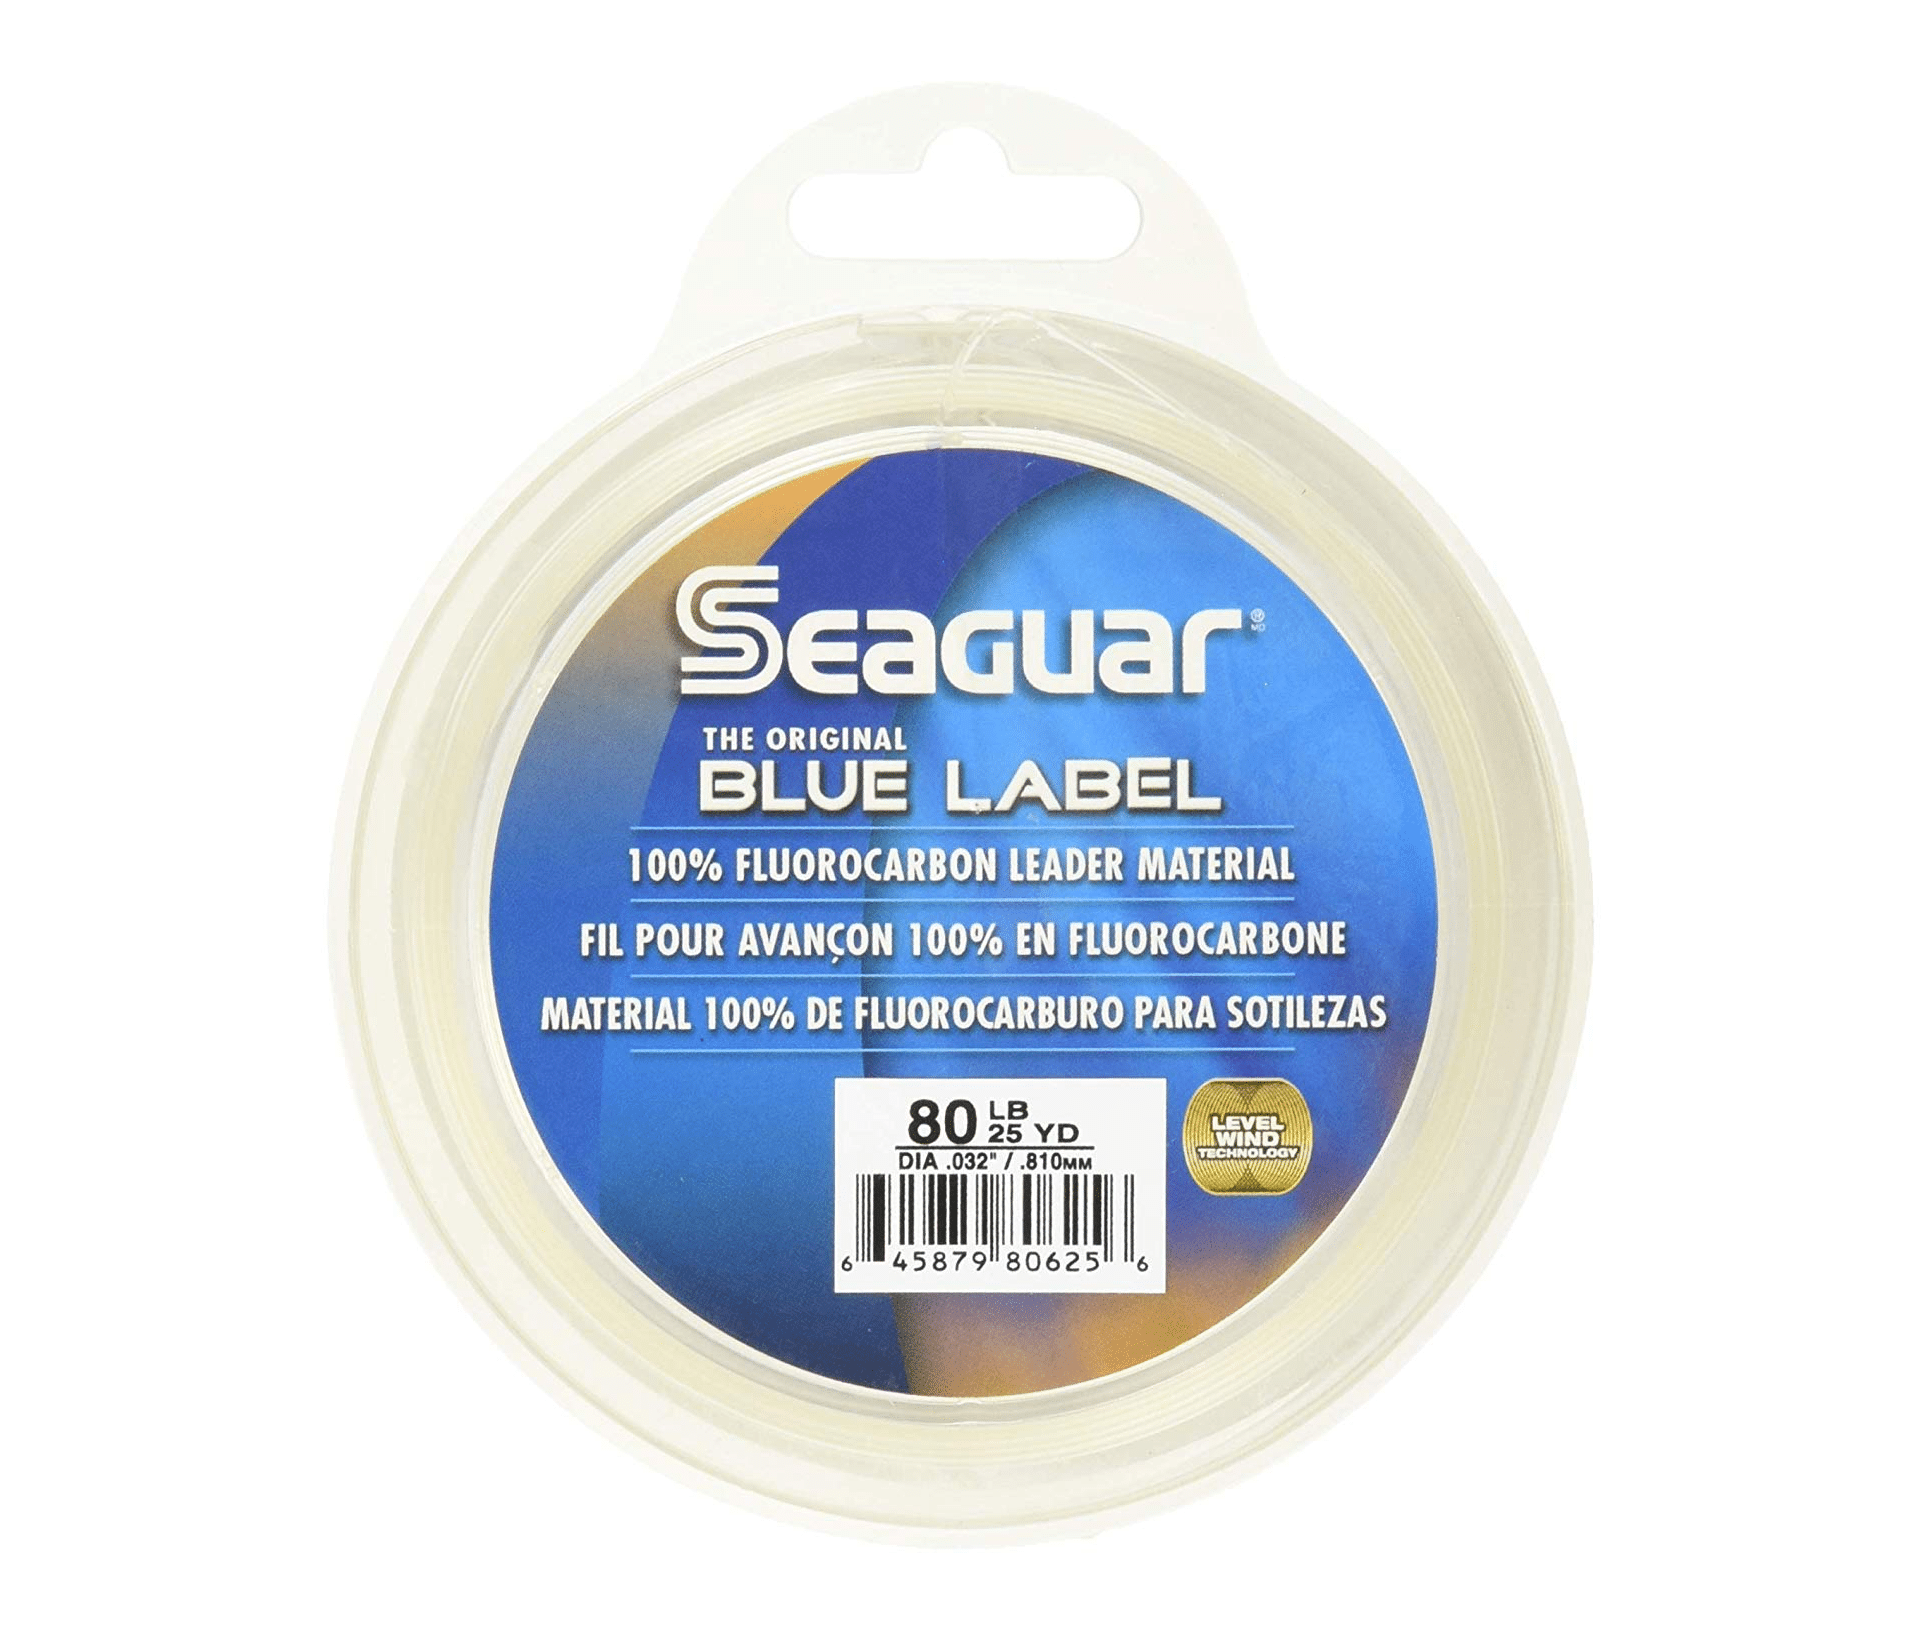 _Seaguar-Blue-Label-25-Yards-Fluorocarbon-Leader-1